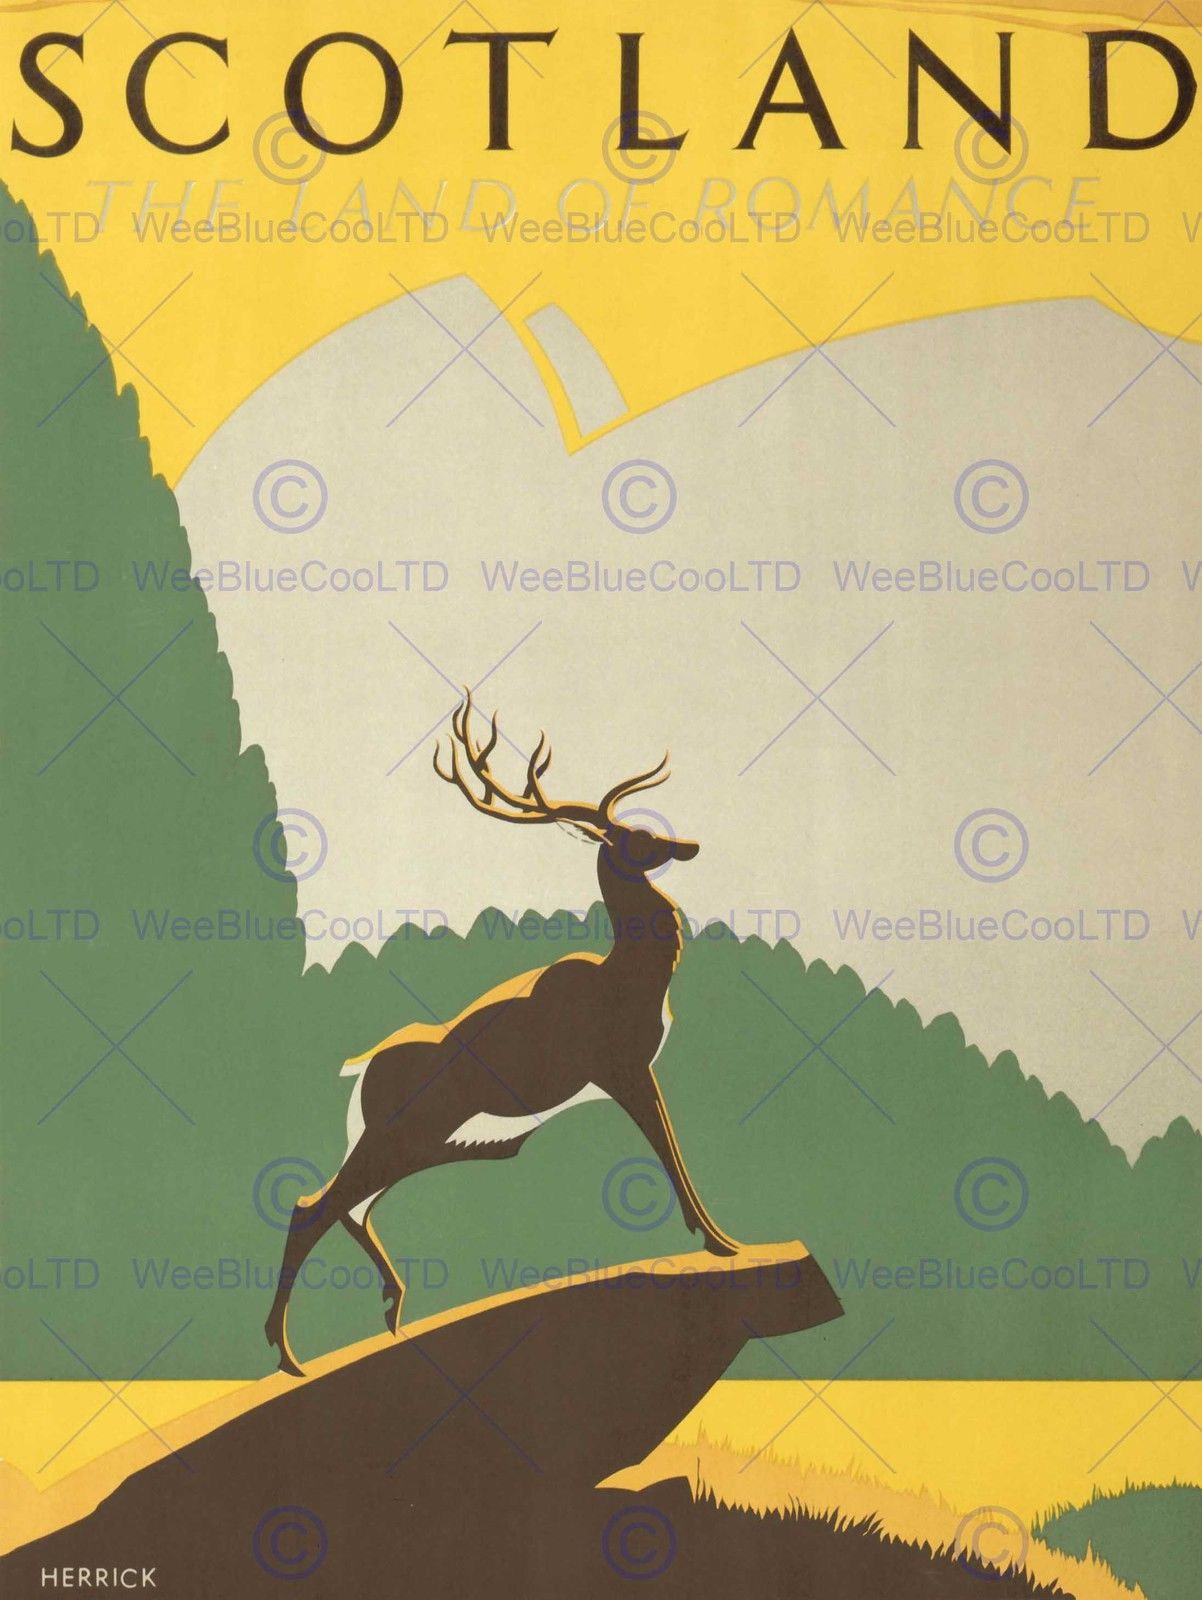 86863 TOURISM TRANSPORT SCOTLAND STAG ANCHOR HIGHLANDS WALL PRINT POSTER CA